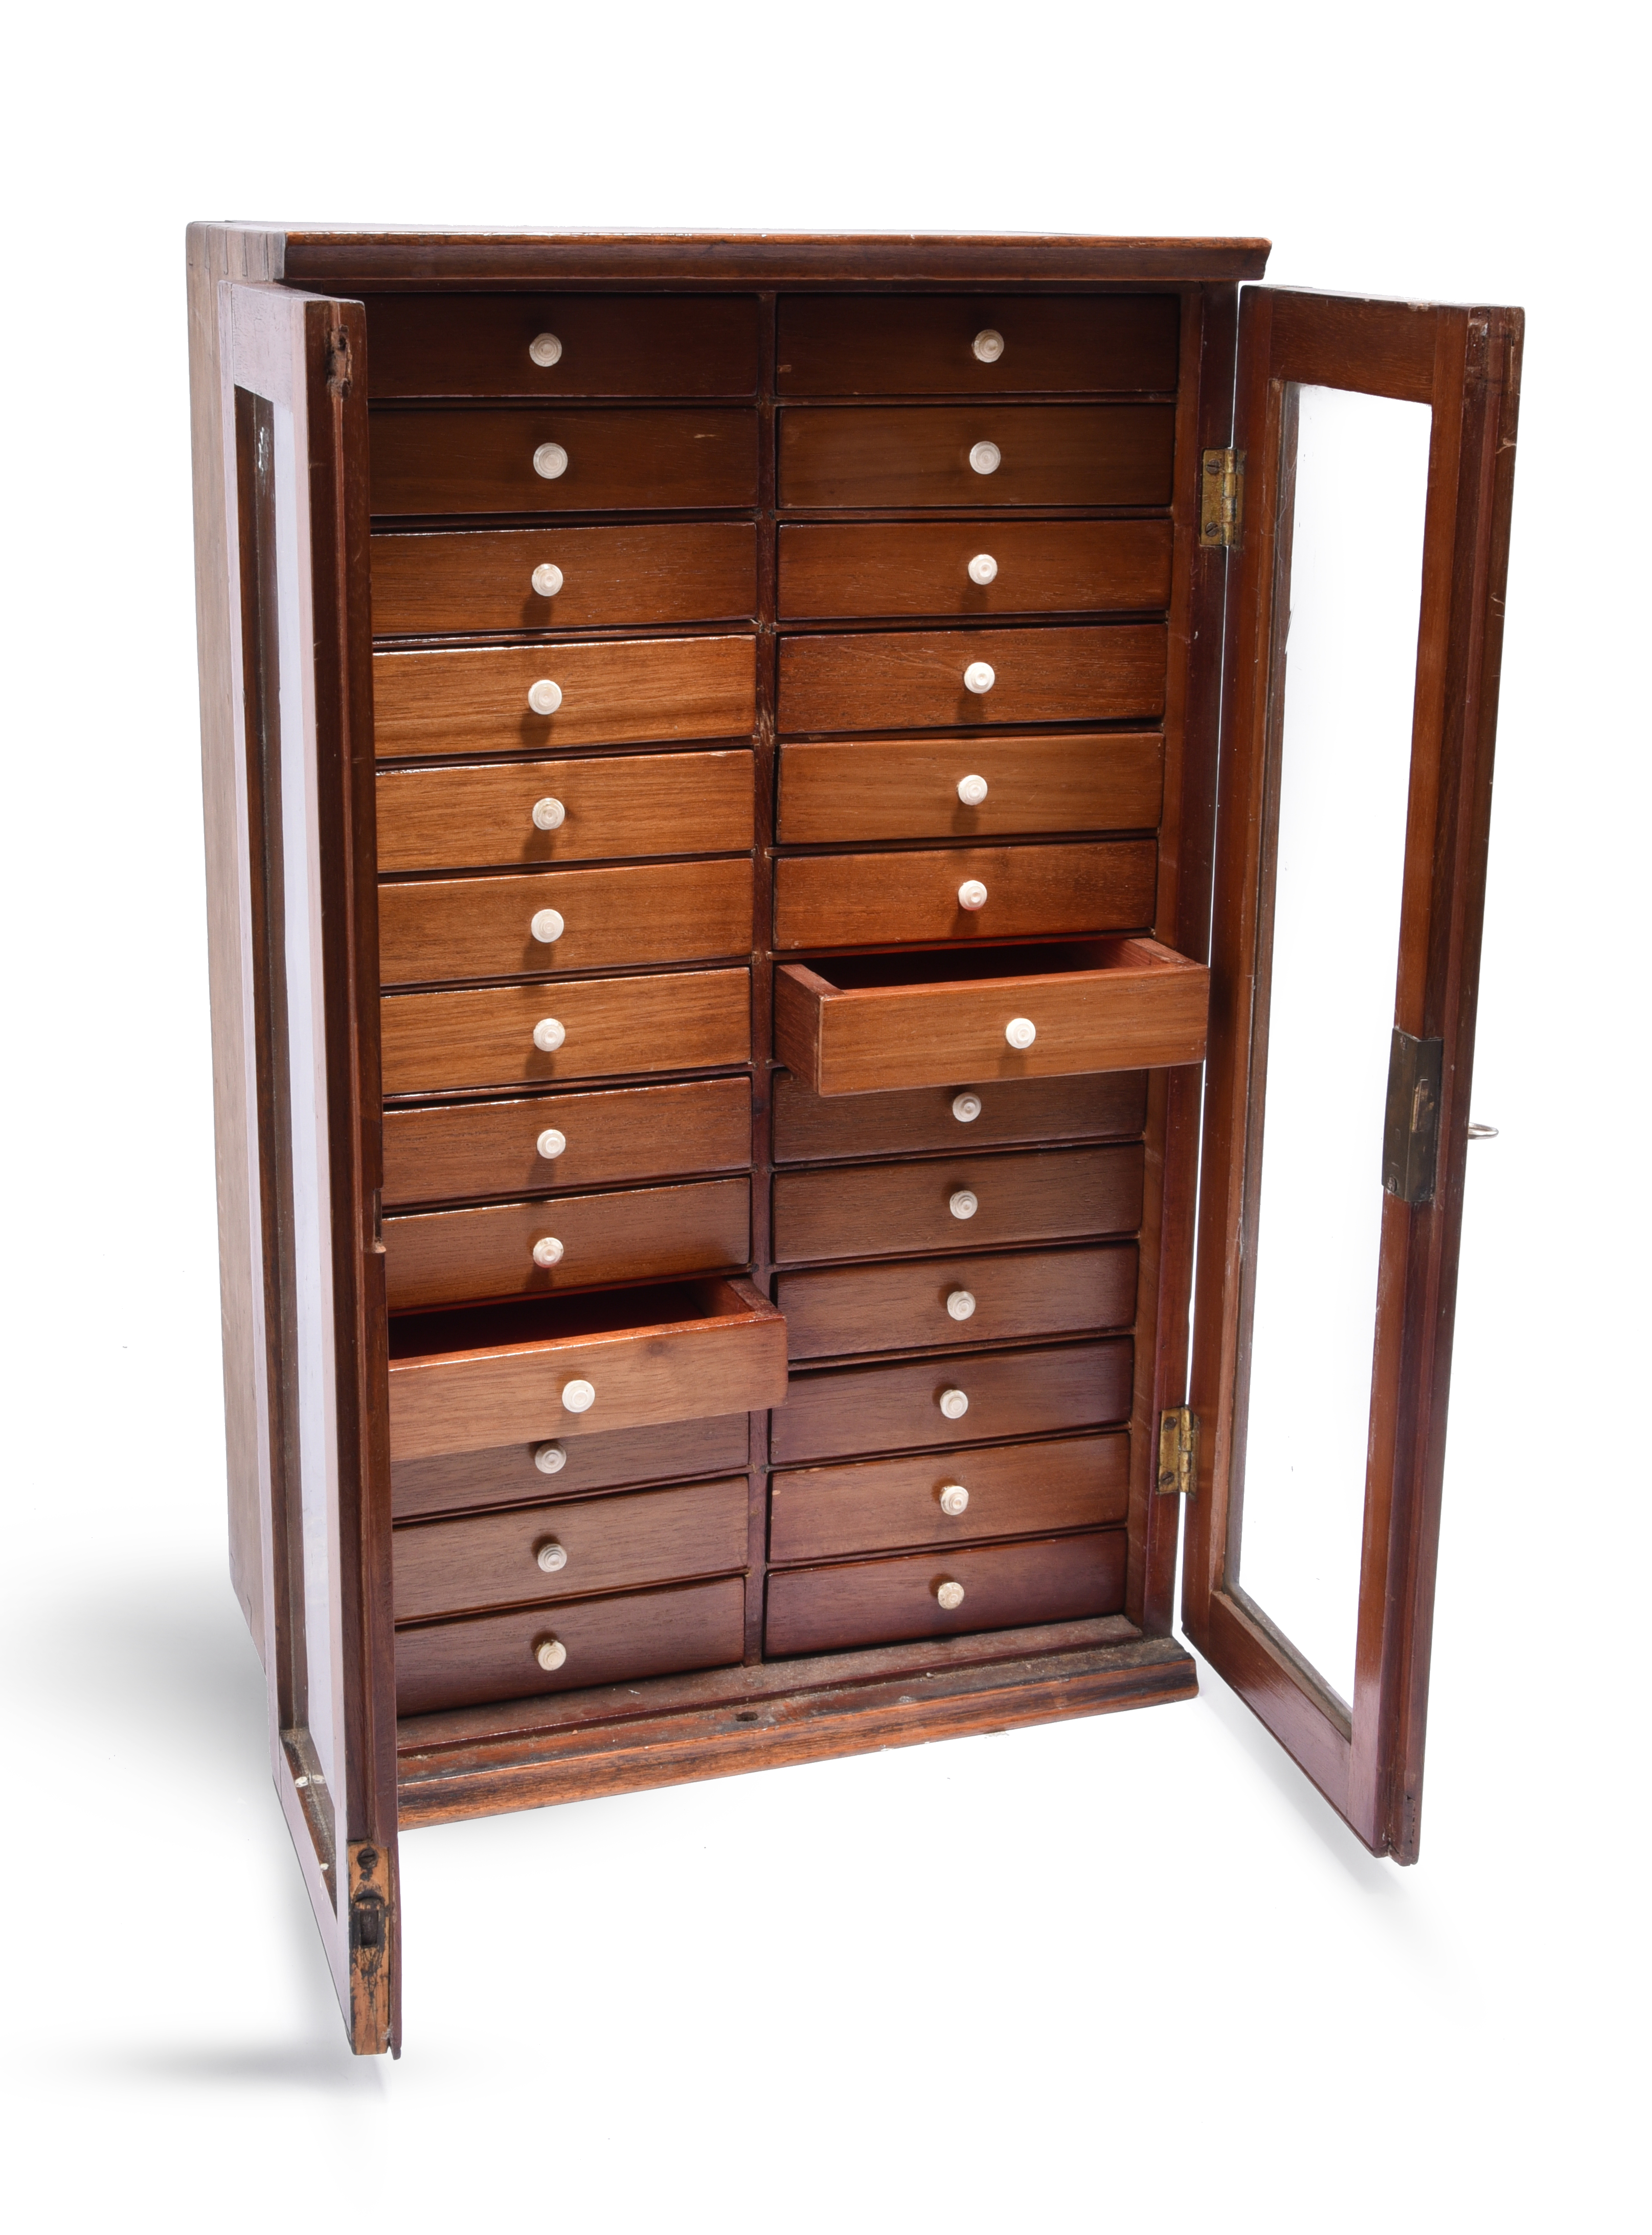 A late 19th/early 20th century collectors cabinet, 26 small drawers in two columns enclosed by